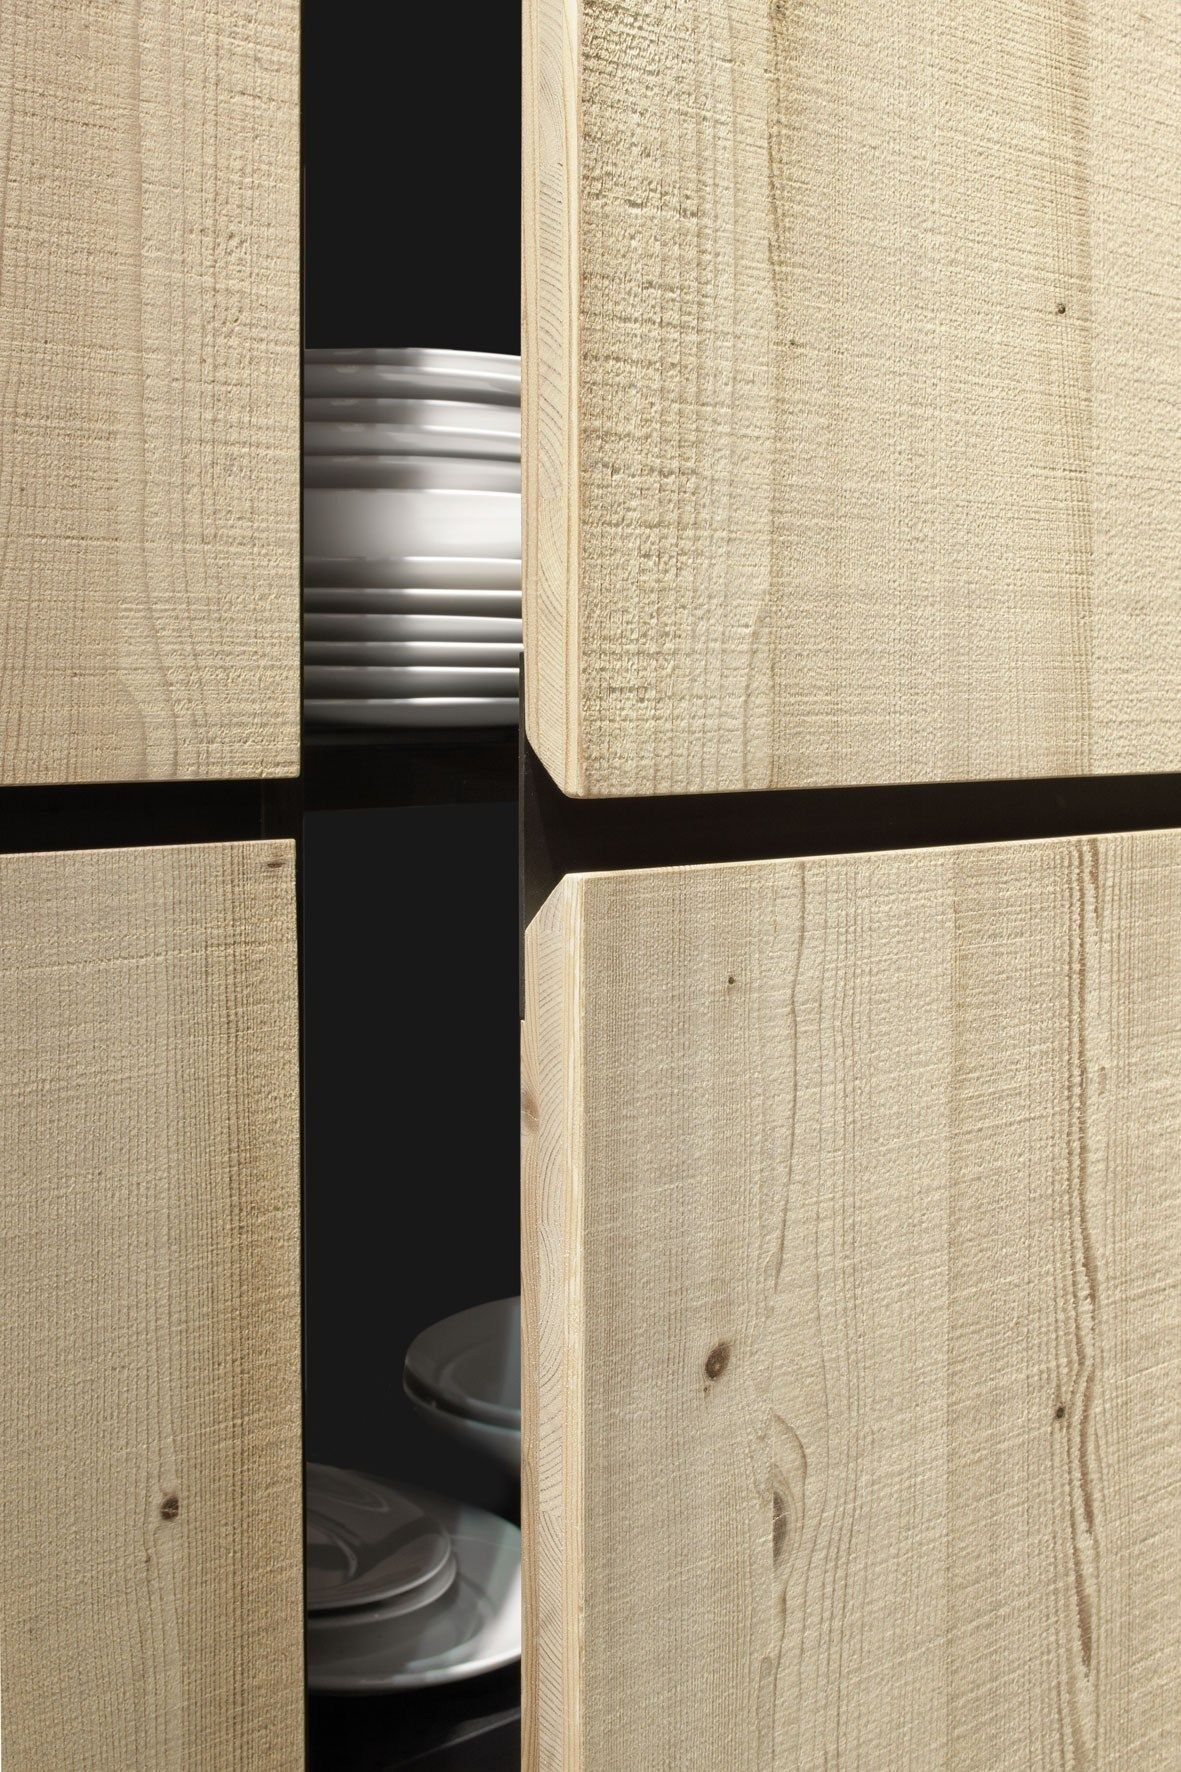 cabinet - cupboard - detail - wooden front - recessed handle